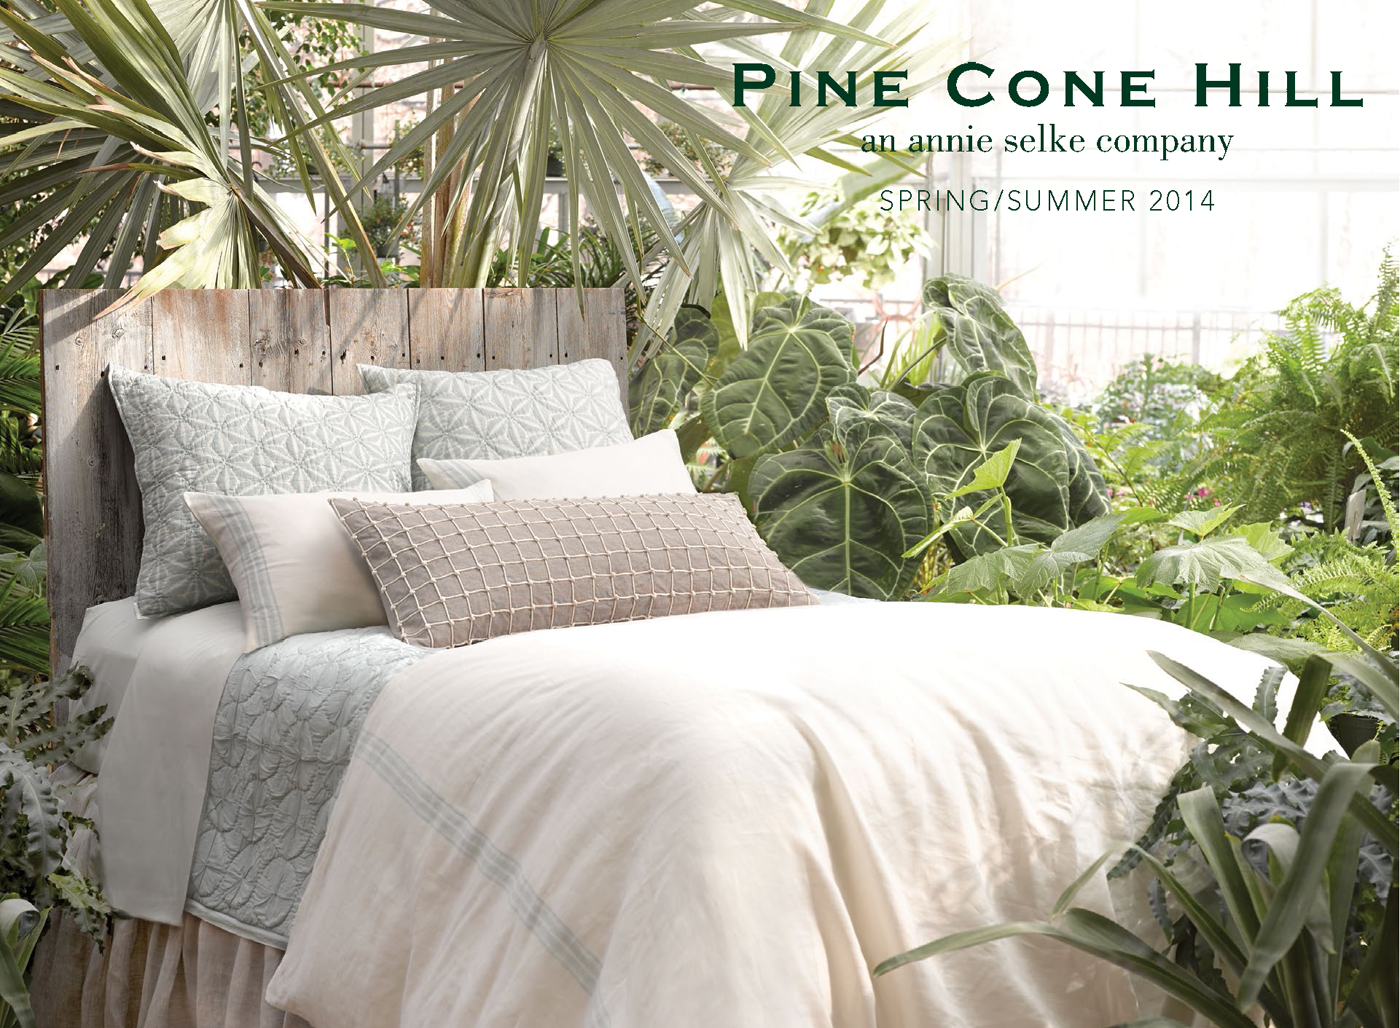 charming pine cone hill in white olive tan theme for lovely bedding ideas